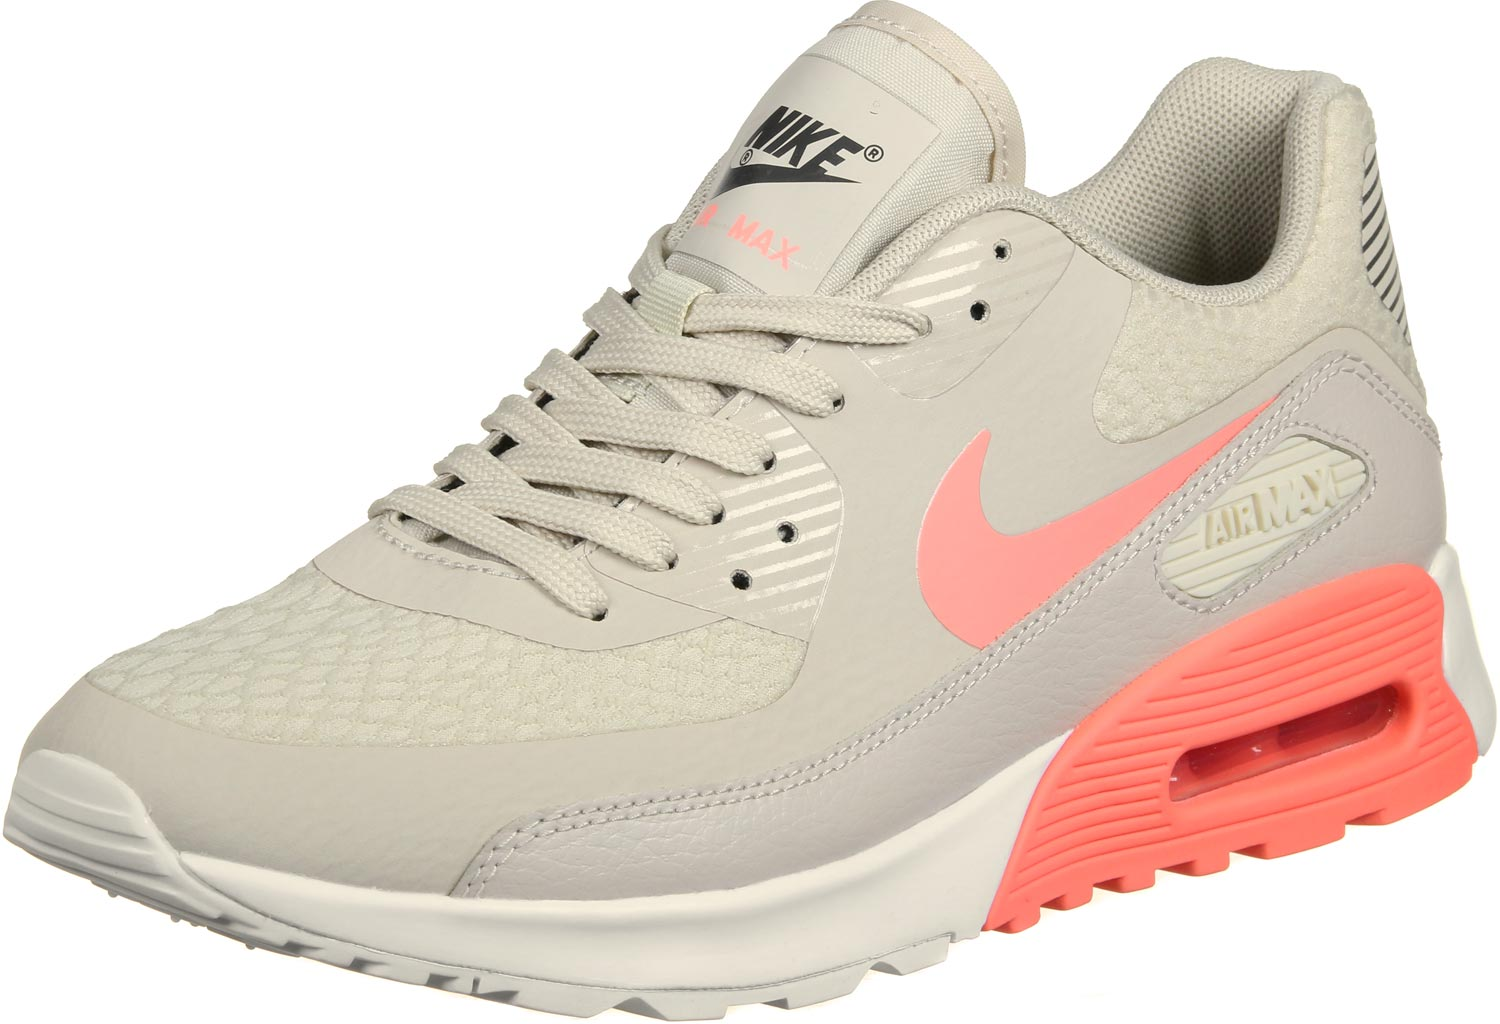 nike air max bw blanc rouge noir homme,air max beige orange